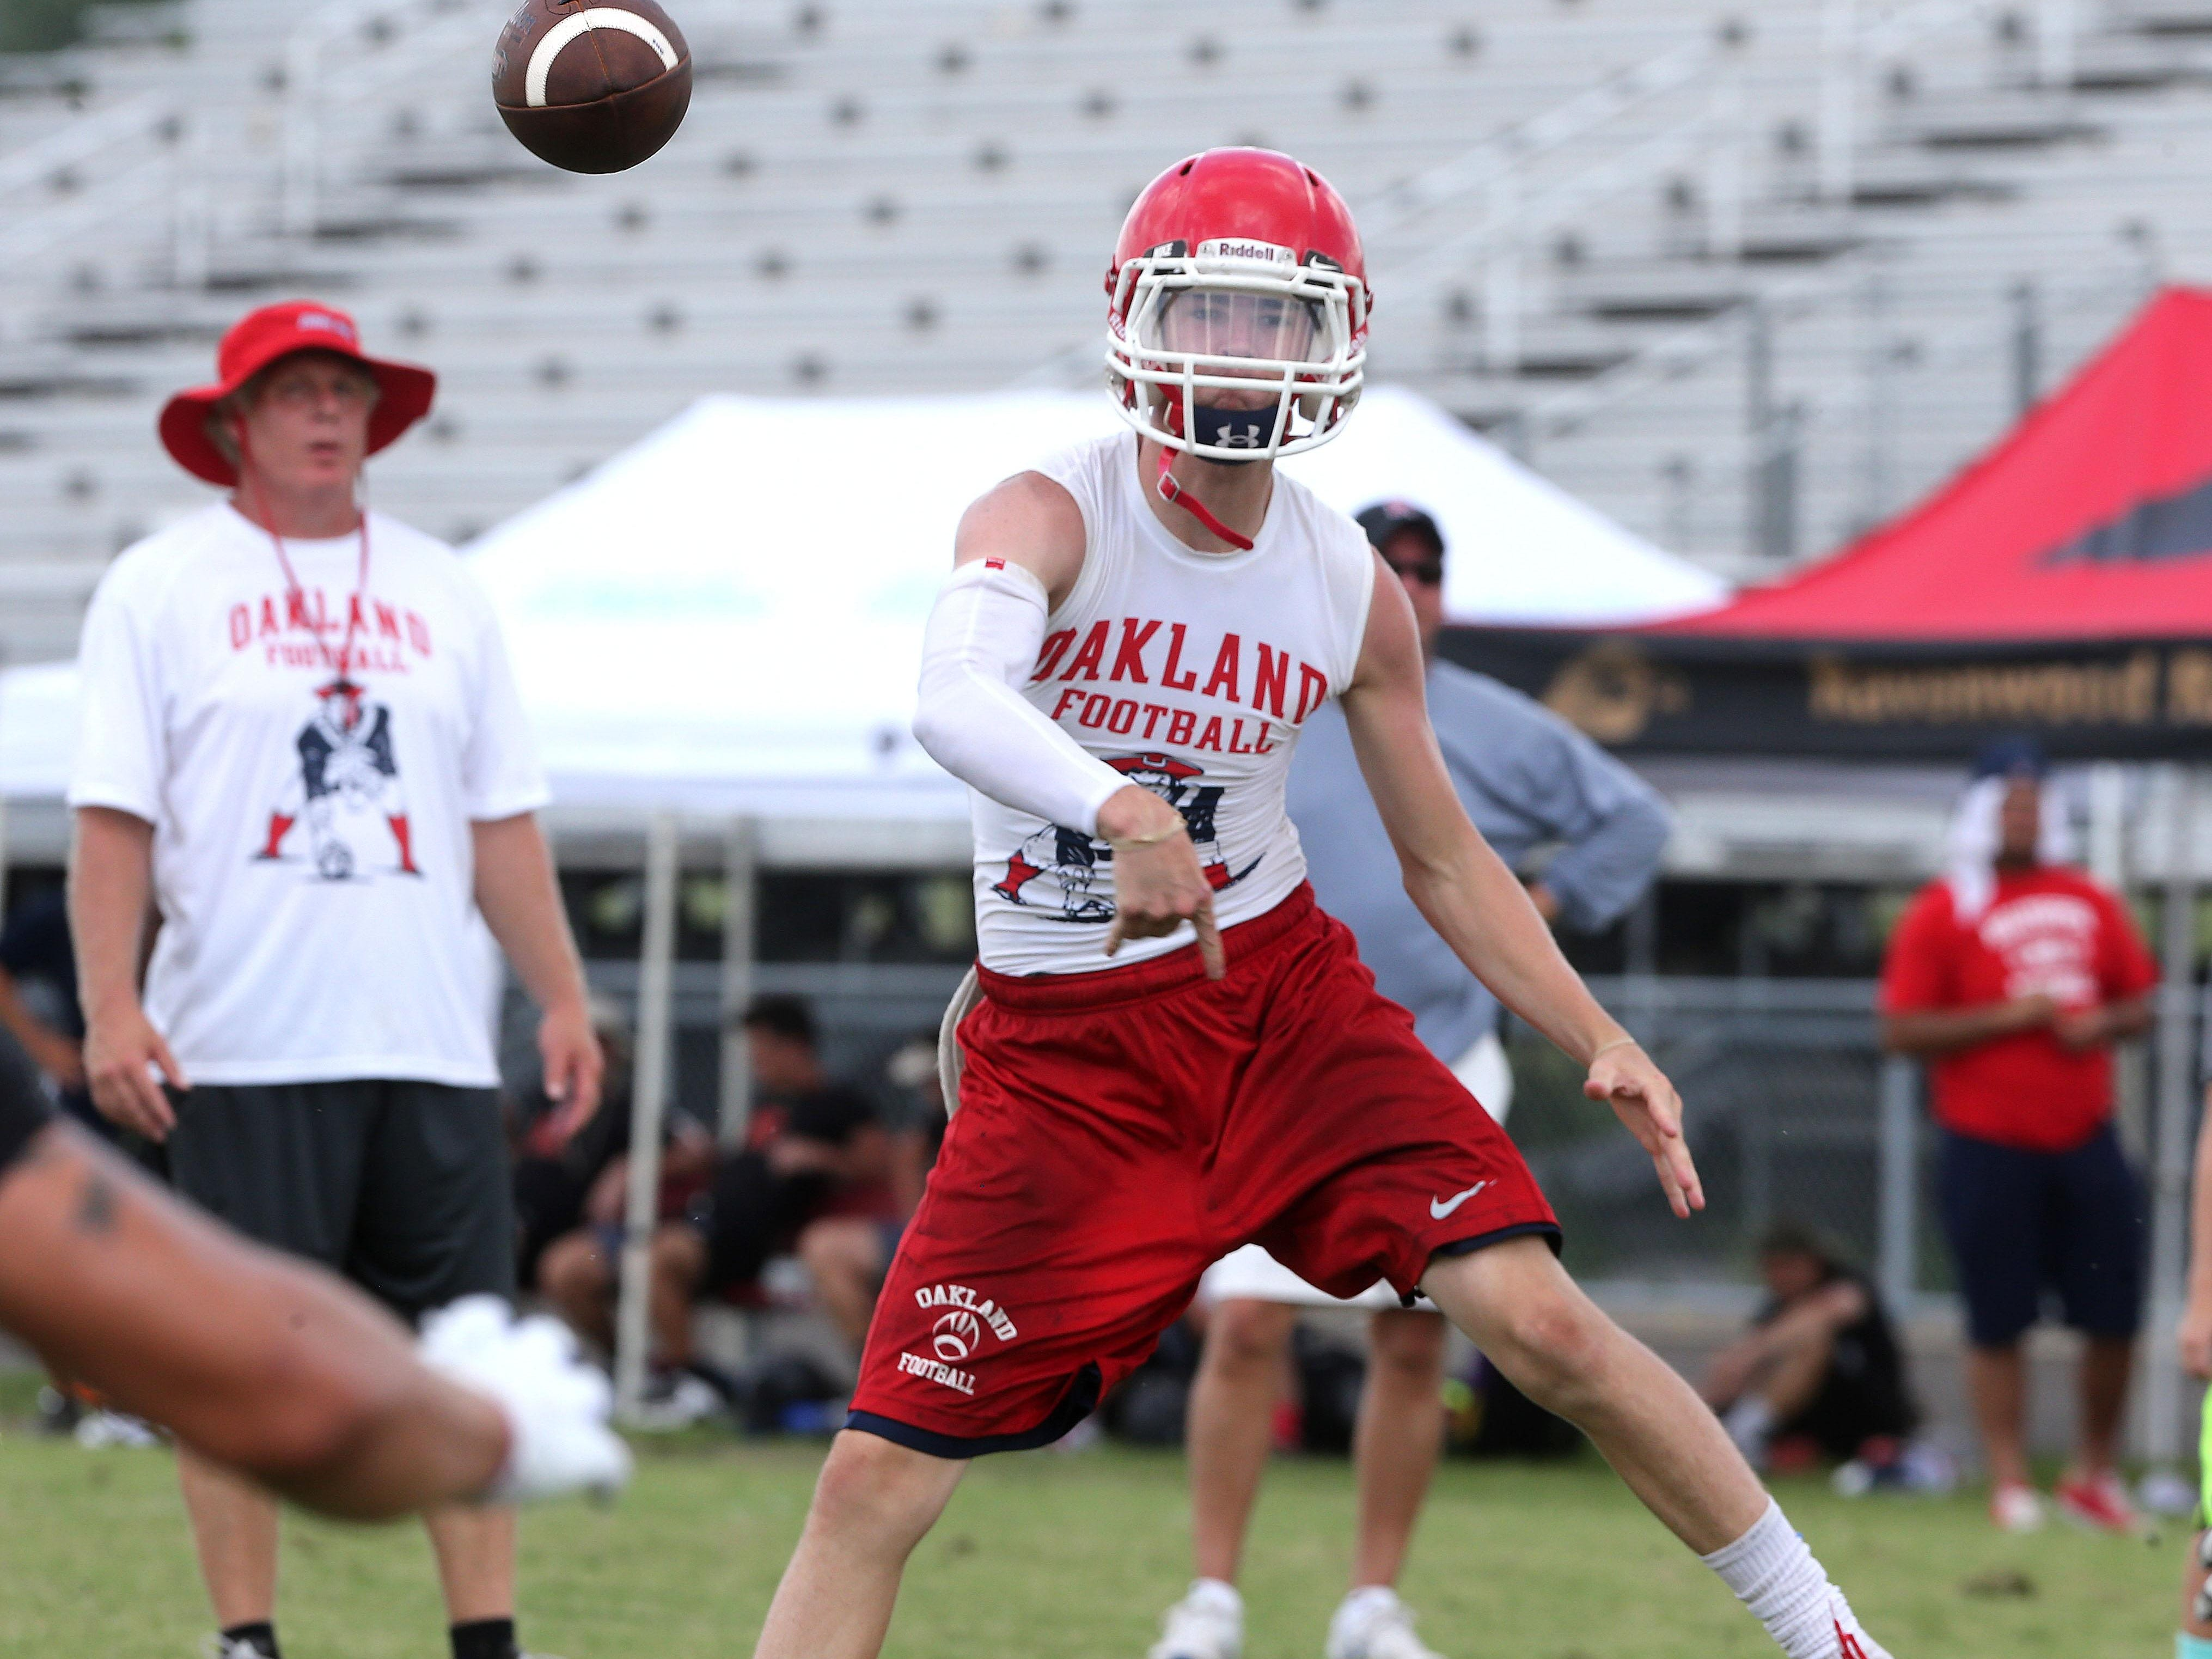 Oakland quarterback Cody Miller throws a pass during the Ravenwood 7-on-7 Passing Tournament Saturday.